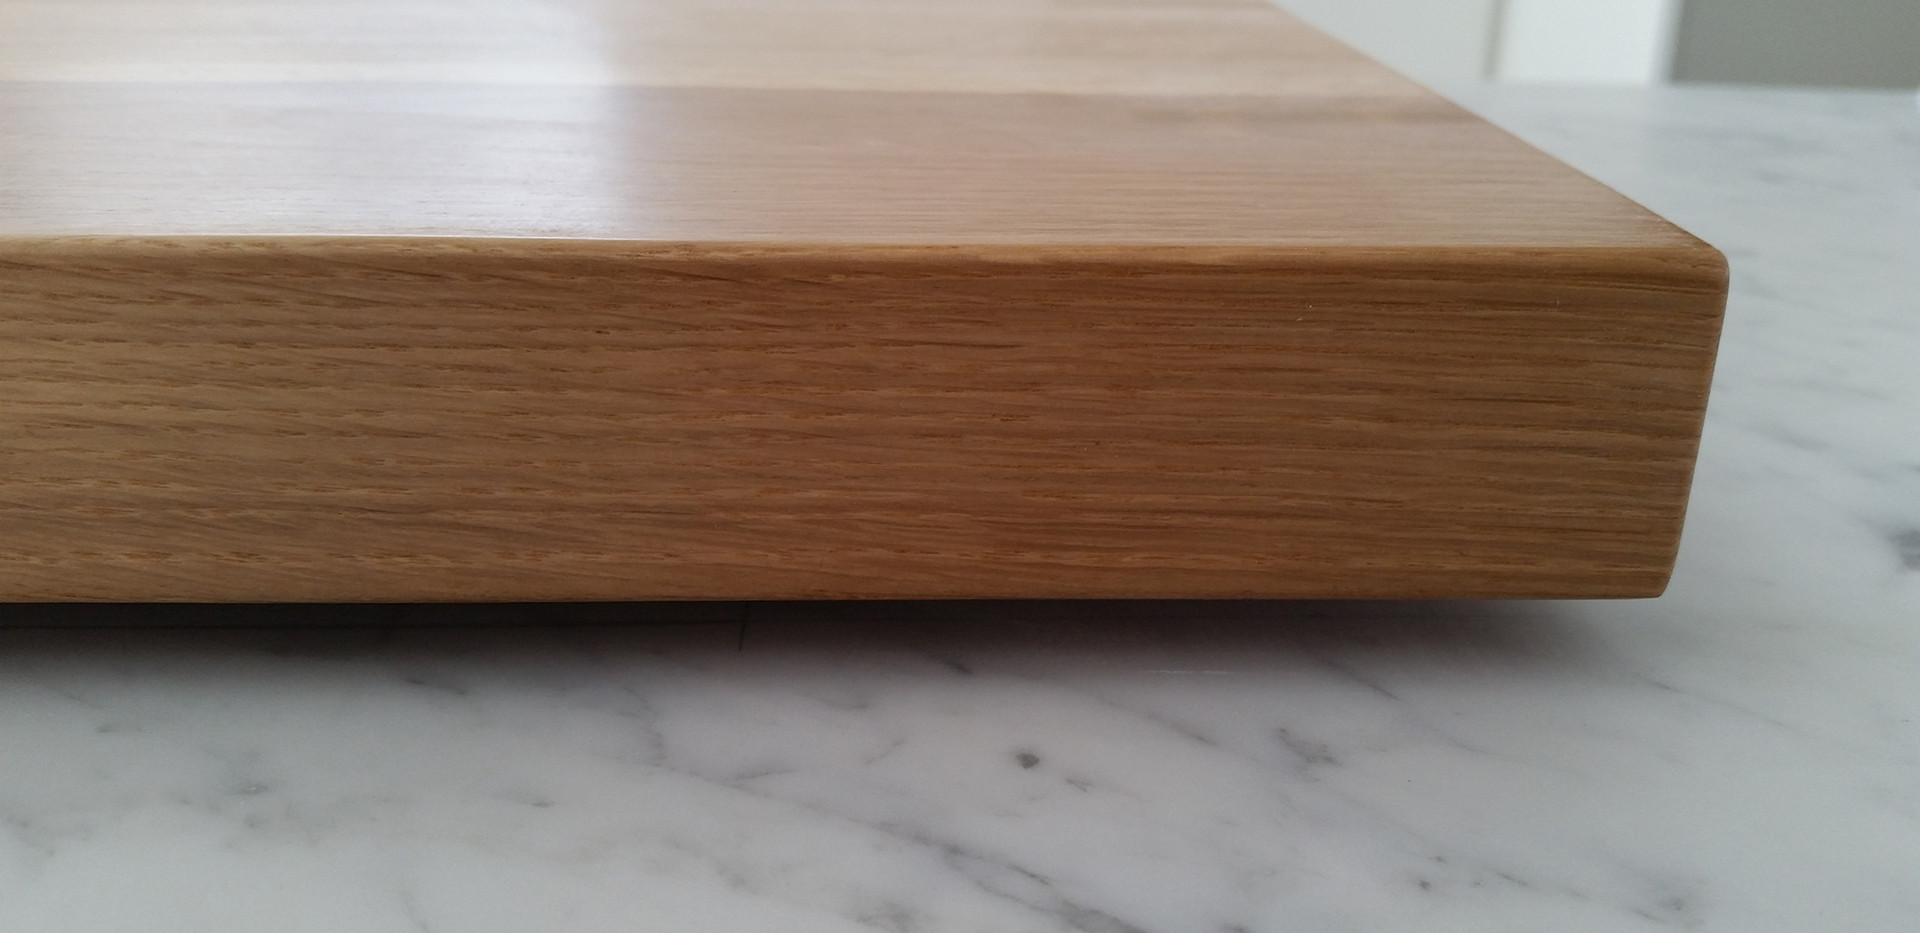 Stone and wood benchtop joint